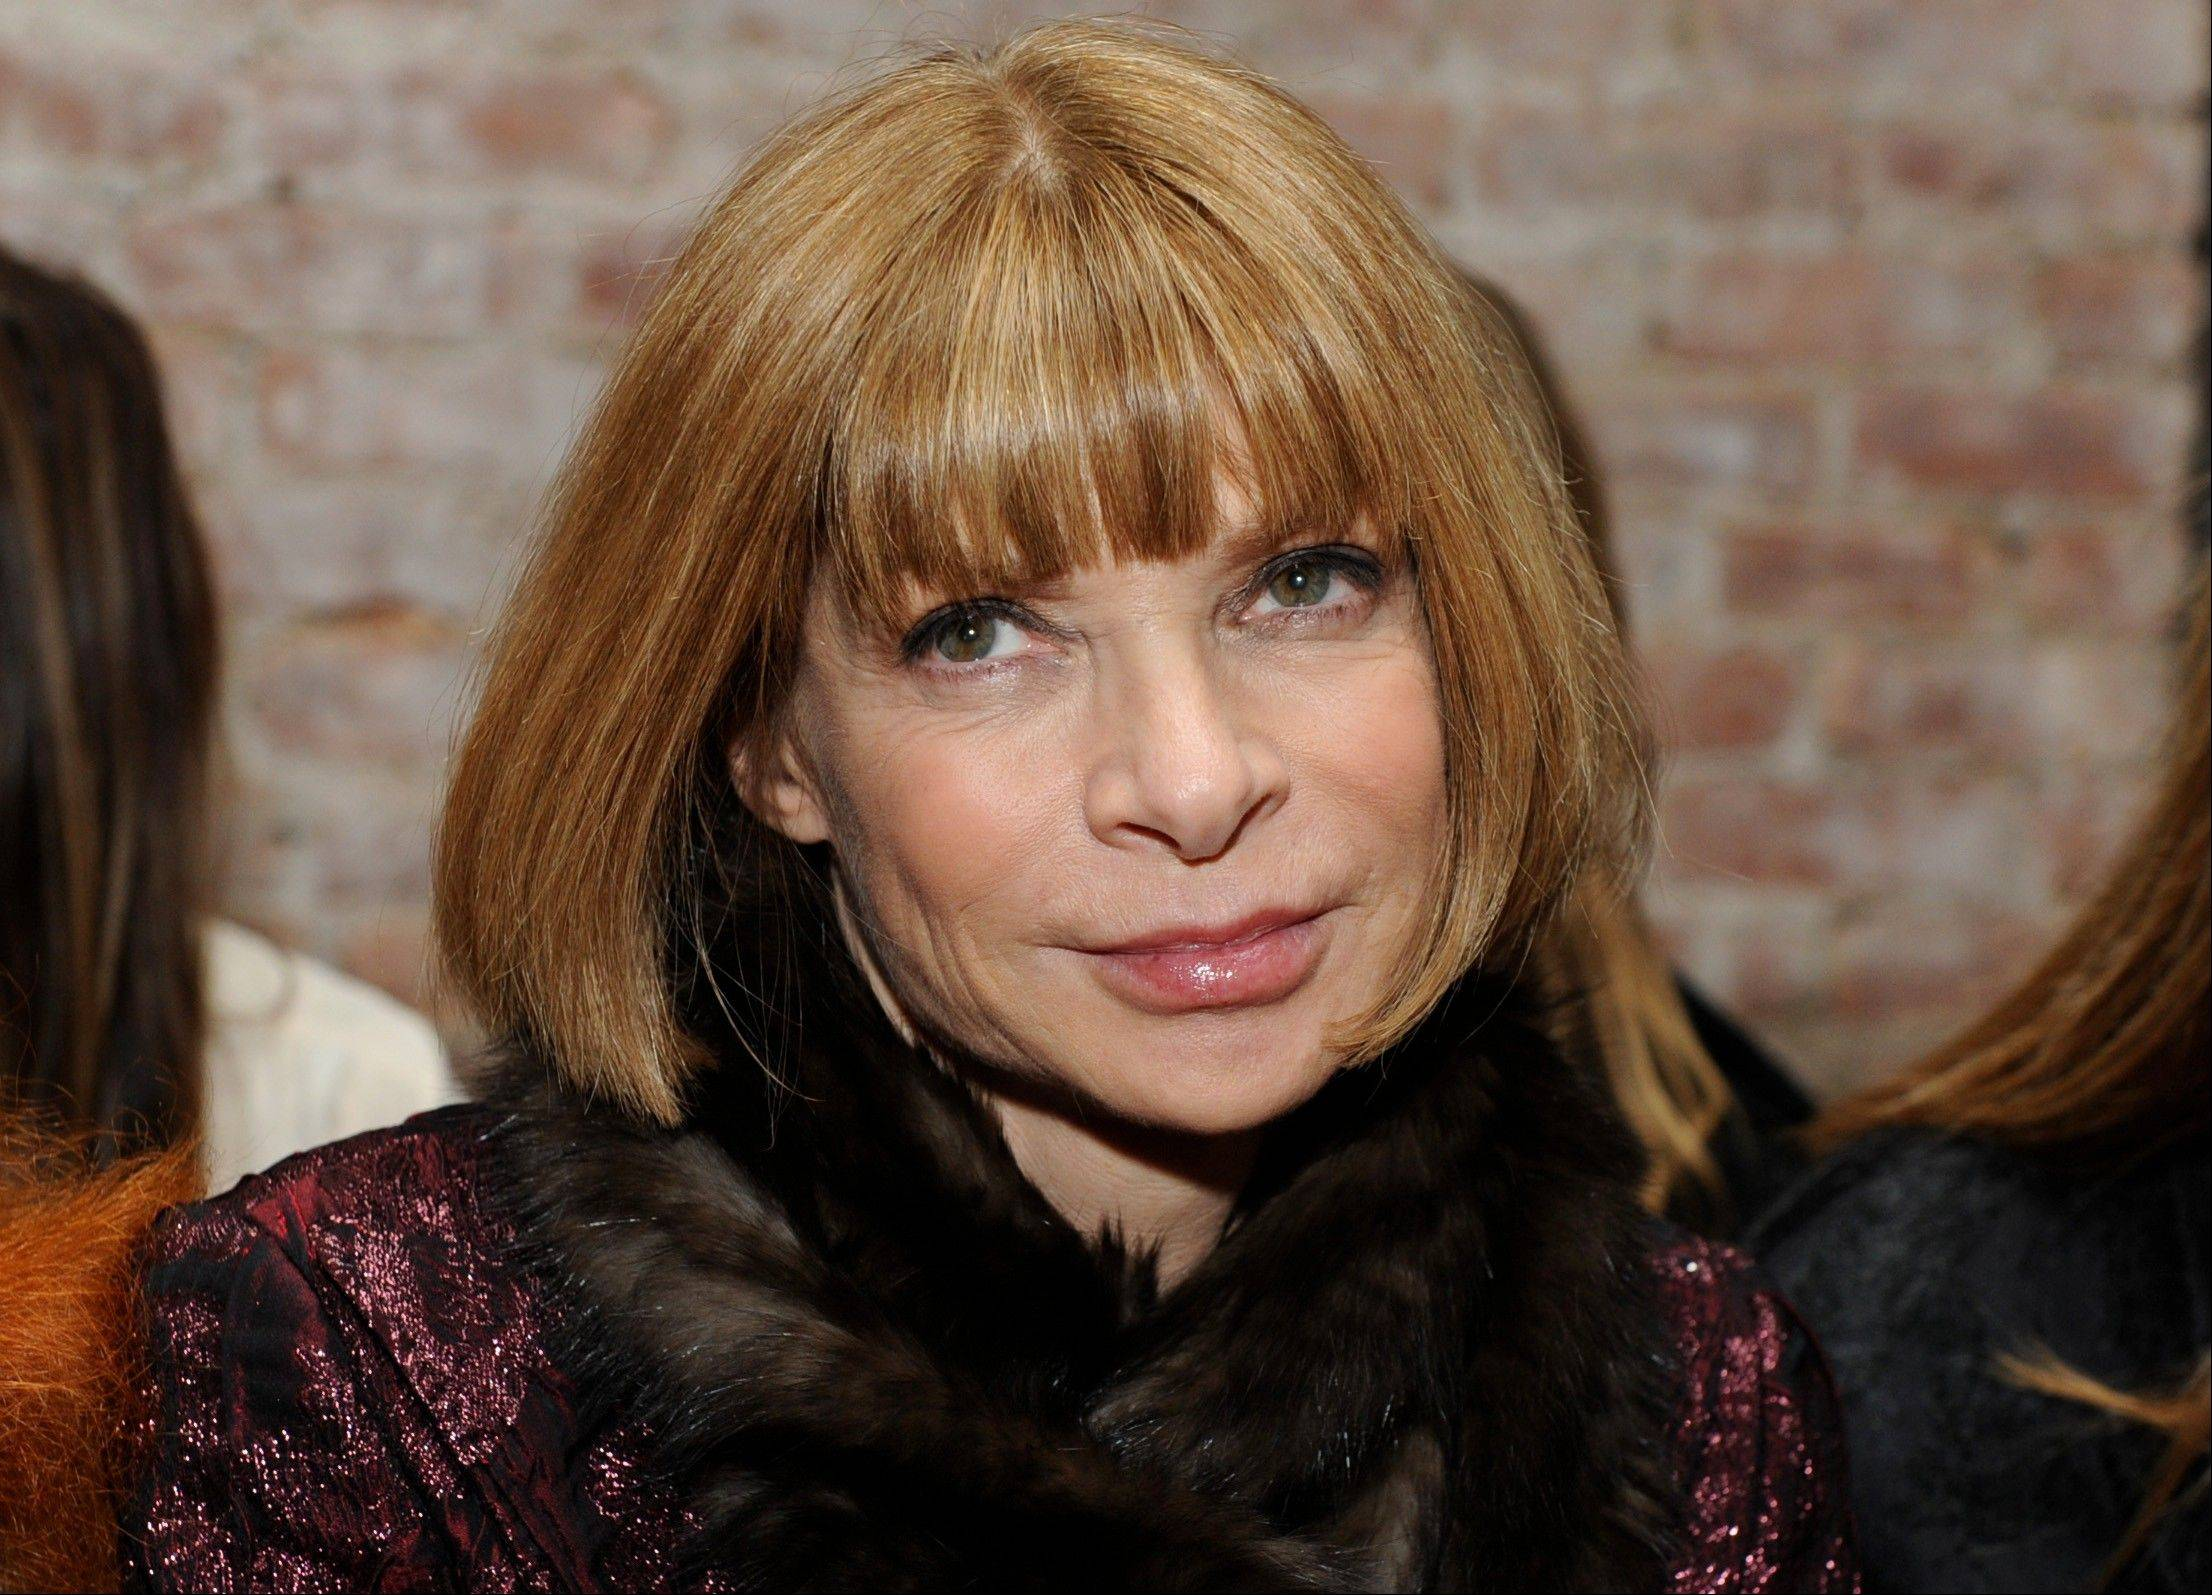 Condé Nast is expanding Vogue editor-in-chief Anna Wintour's role. She has been named the company's artistic director.